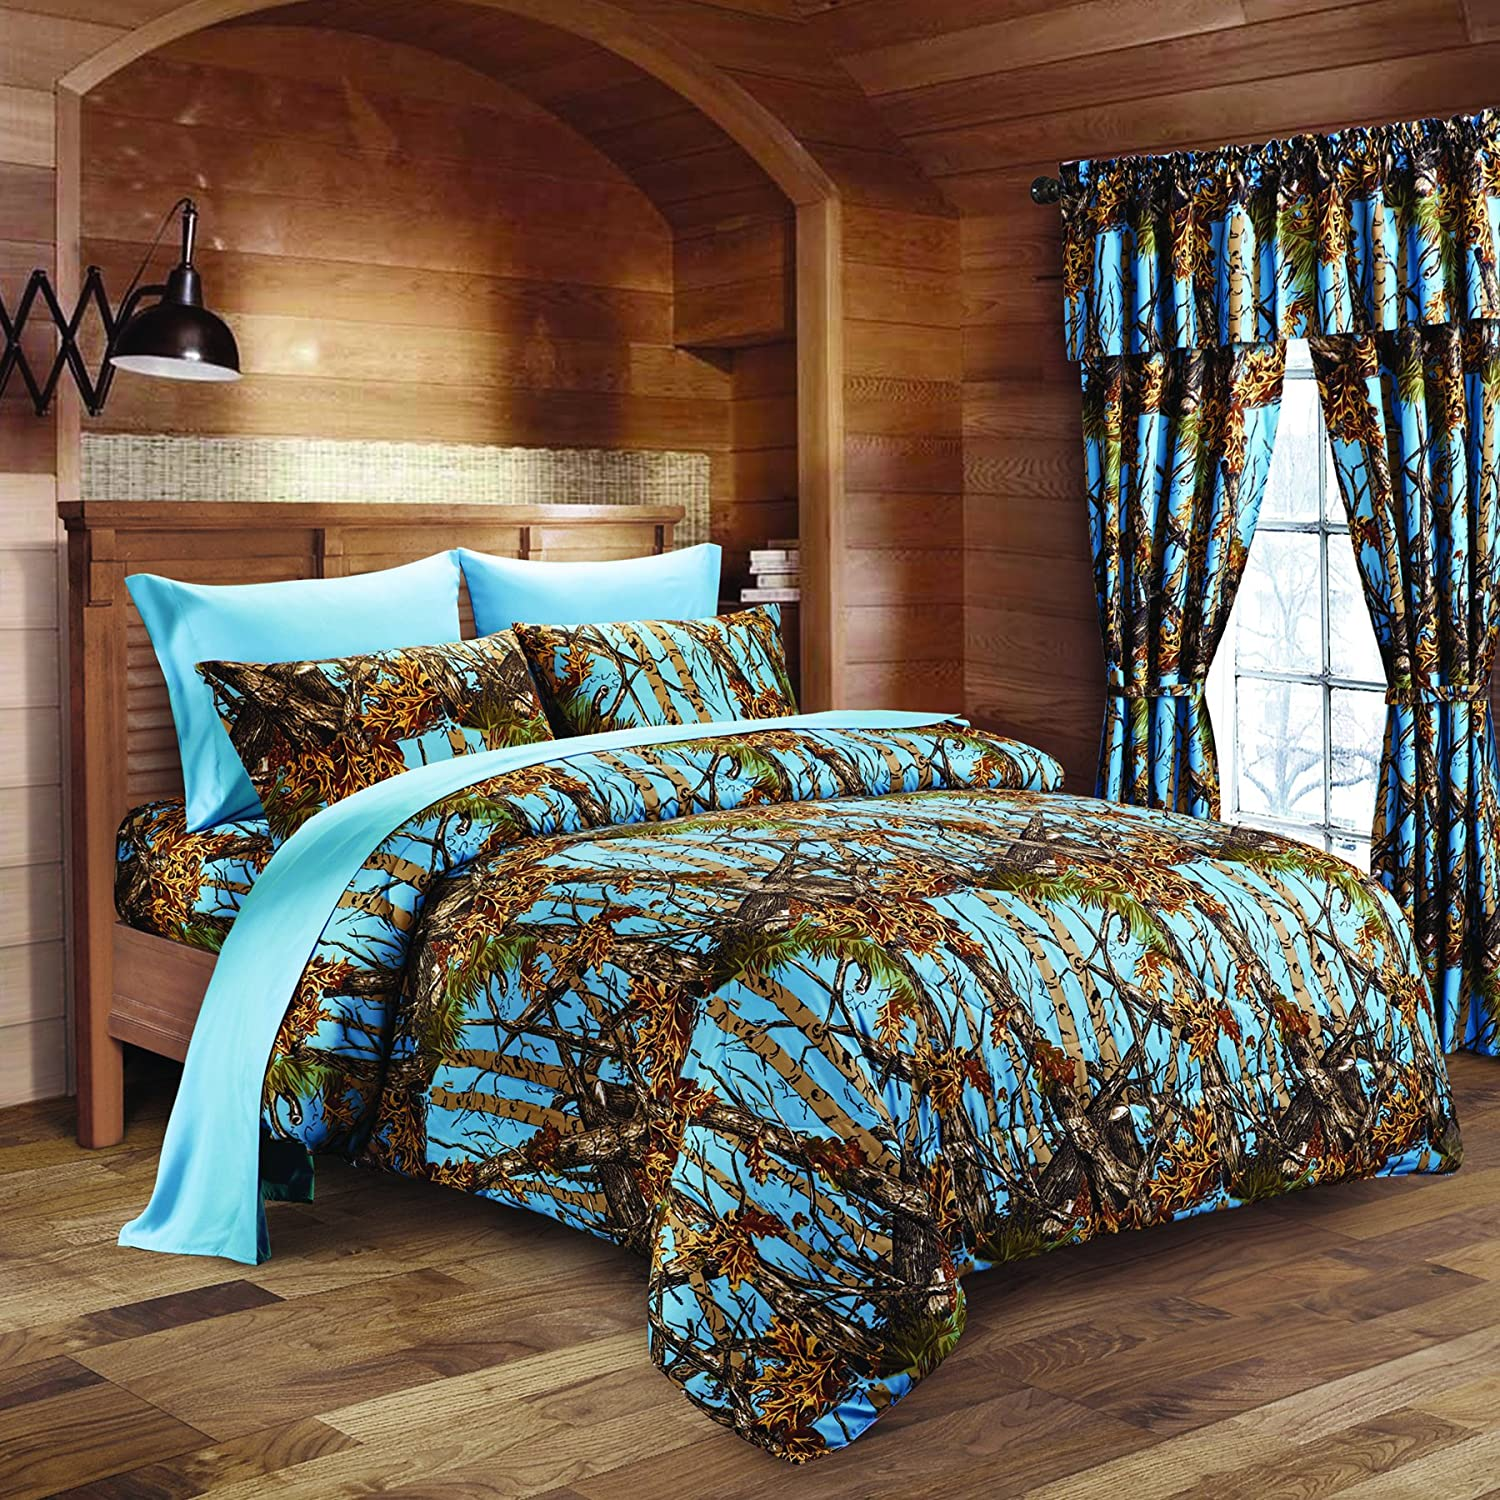 Blue Camo Comforter & Sheet Set Bed in a Bag - Queen